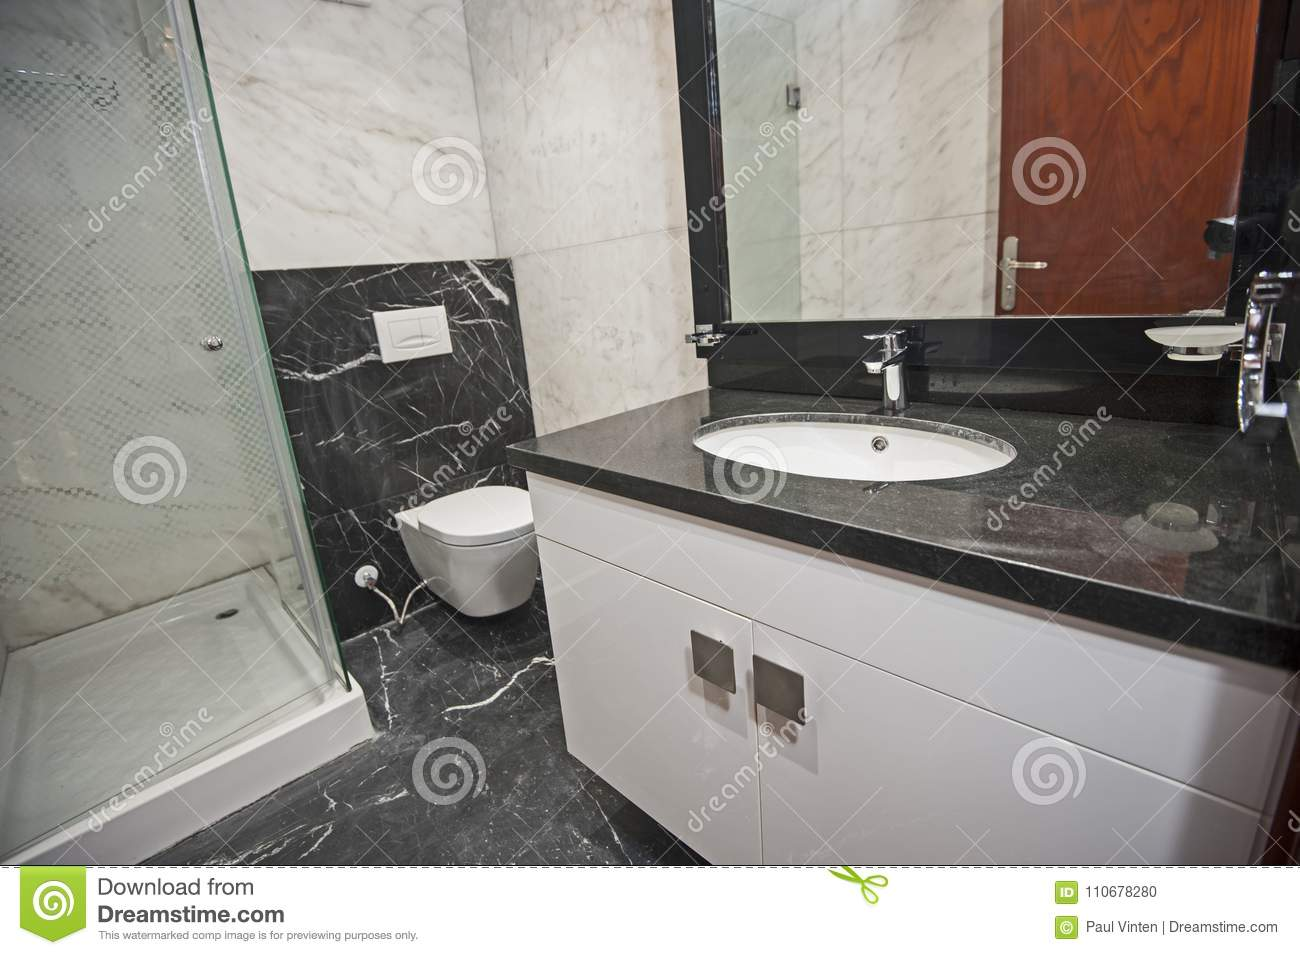 Interior Of A Luxury Show Home Bathroom Stock Photo - Image of ...